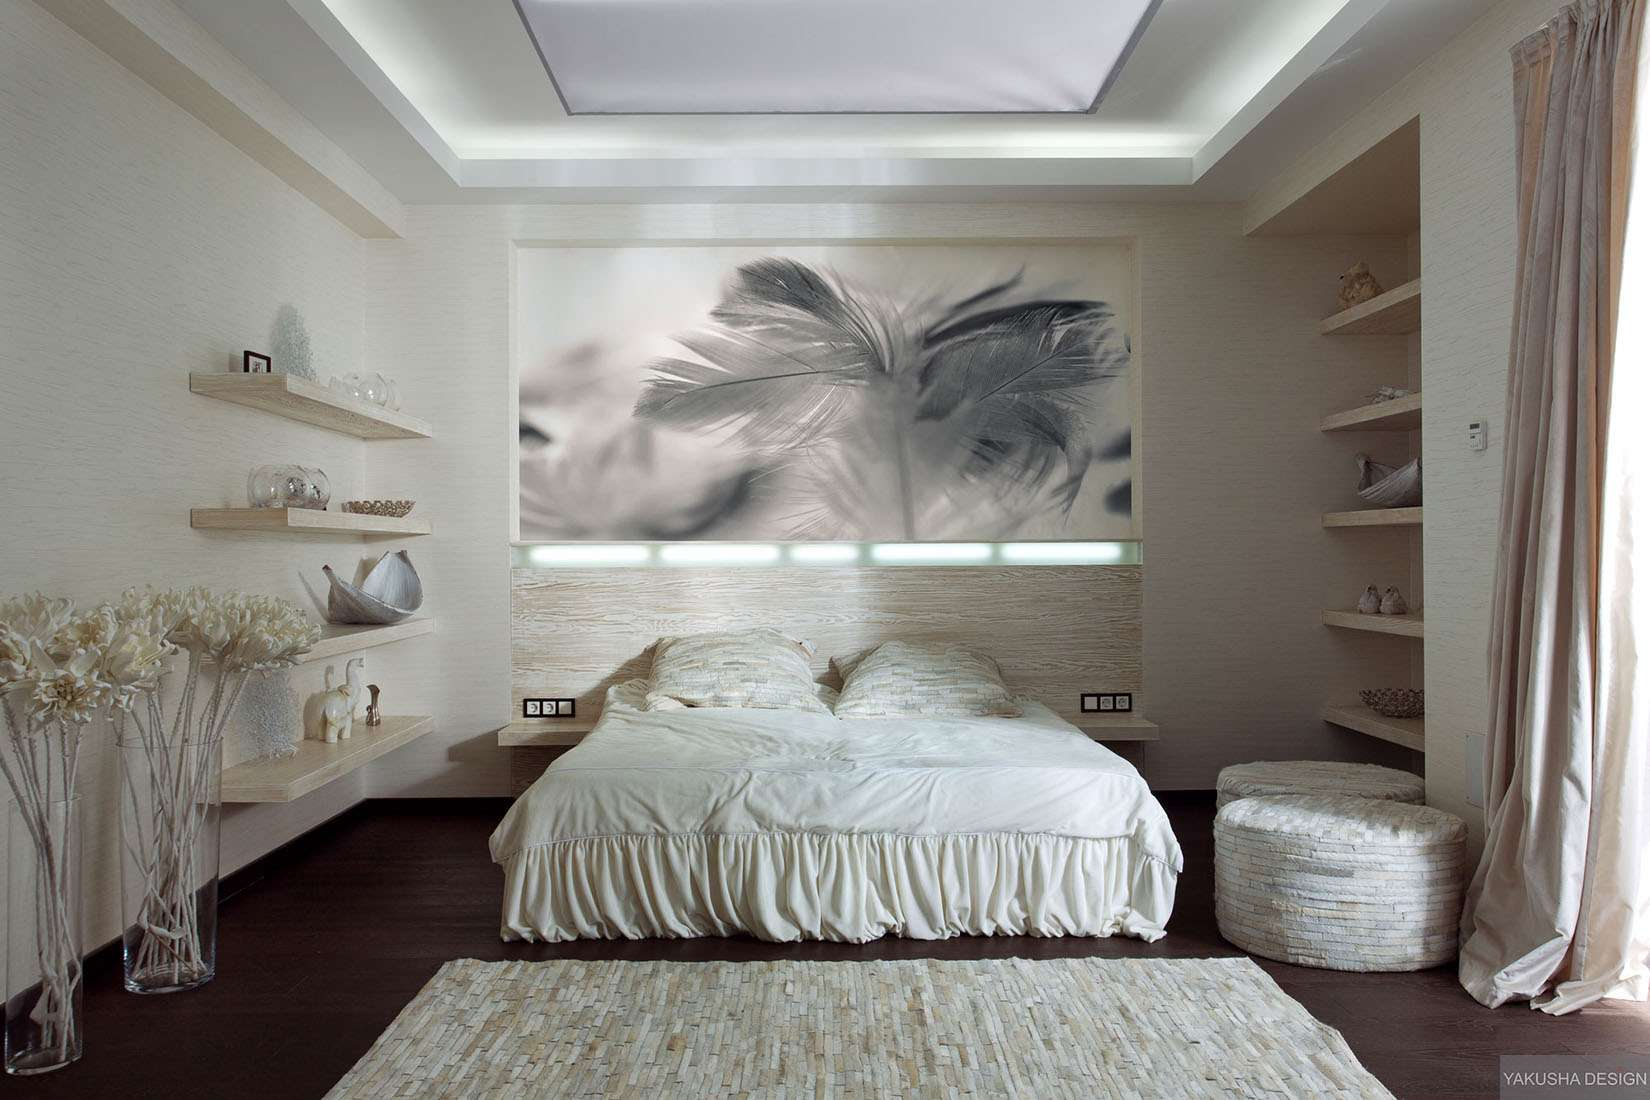 Textured White Bedroom Collectables Displayed Shelving